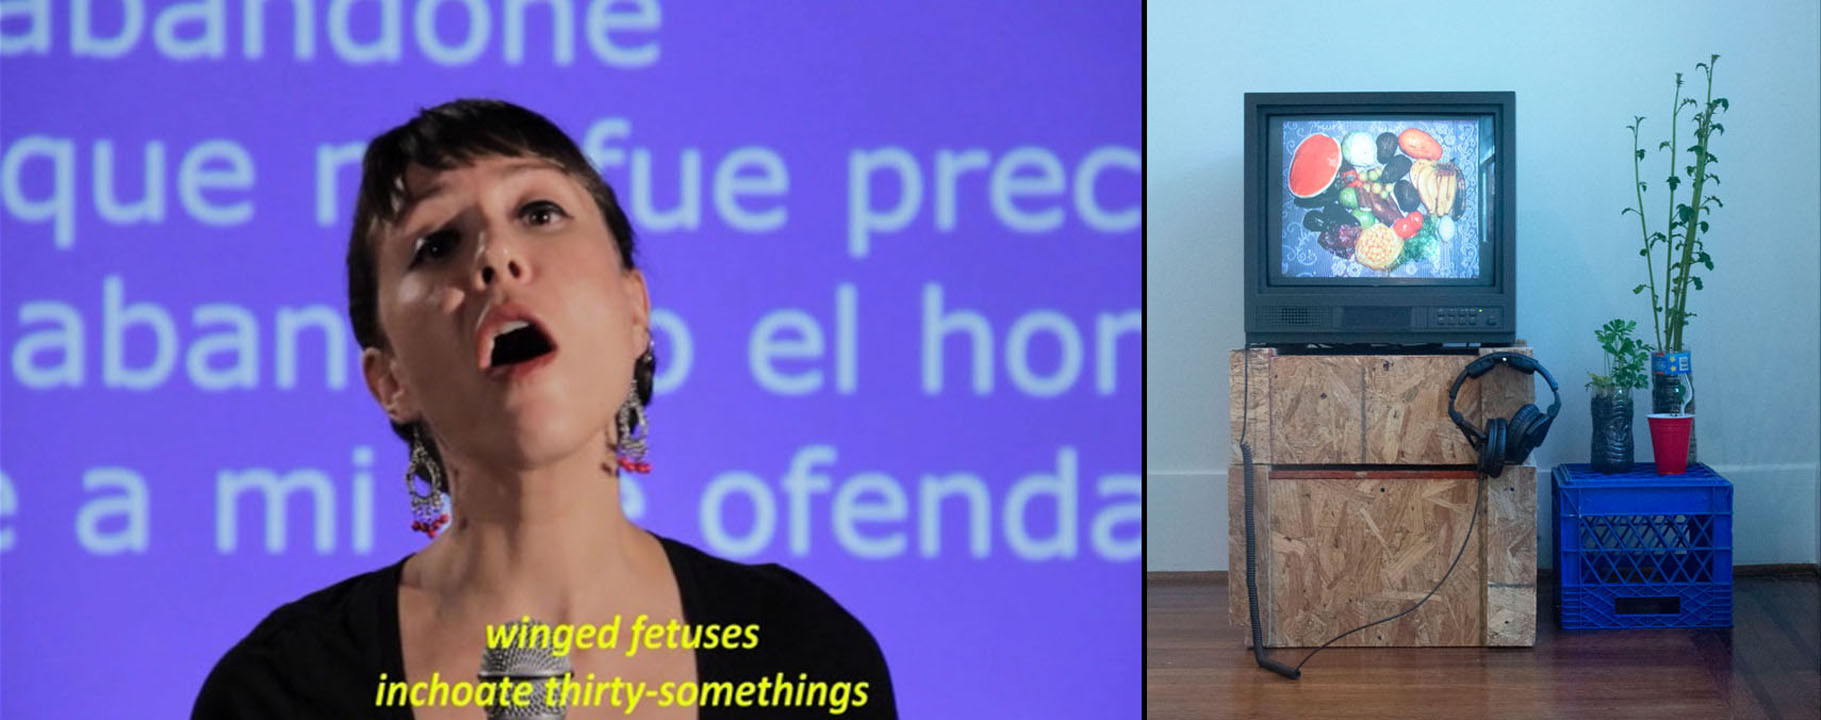 (L) Julia Barbosa Landois,  Star-Crossed II , 2013. Video still, 6:30 minutes. (R) Francis Almendarez,  Nuestro Hogar  (installation view), 2019. Multimedia with produce plants, dimensions variable.